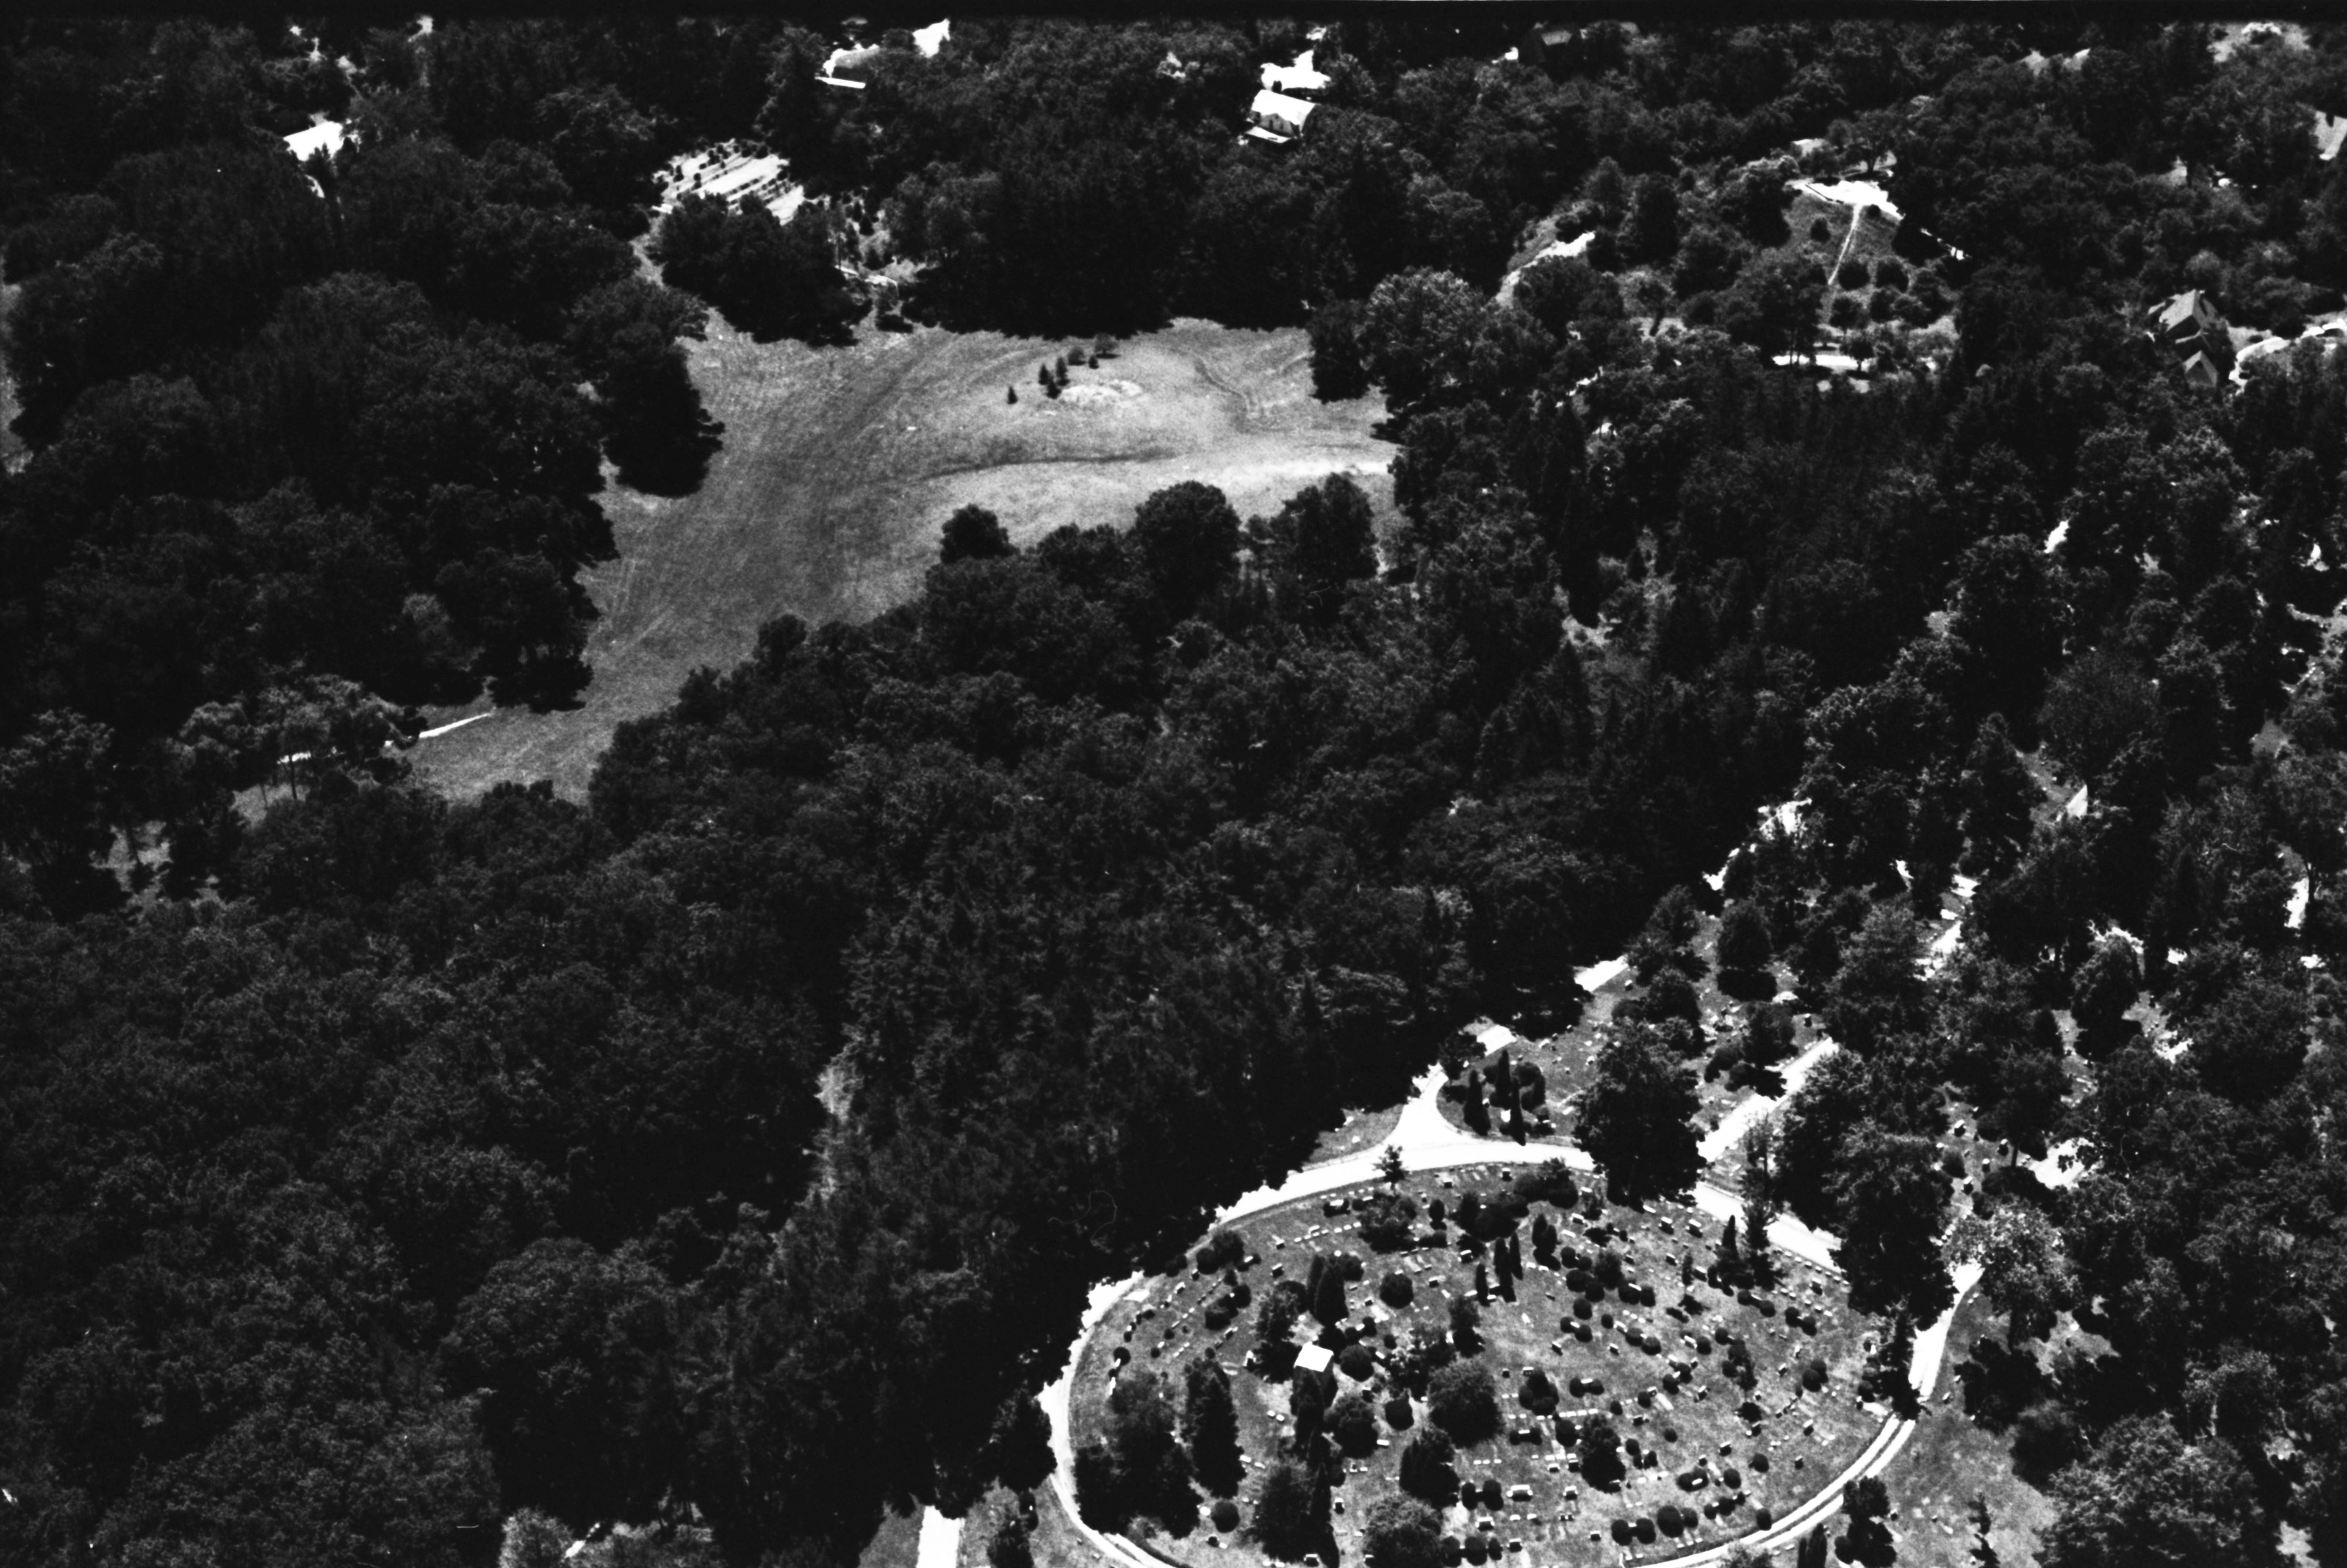 Aerial Photograph of Forest Hill Cemetery, July 1977 image